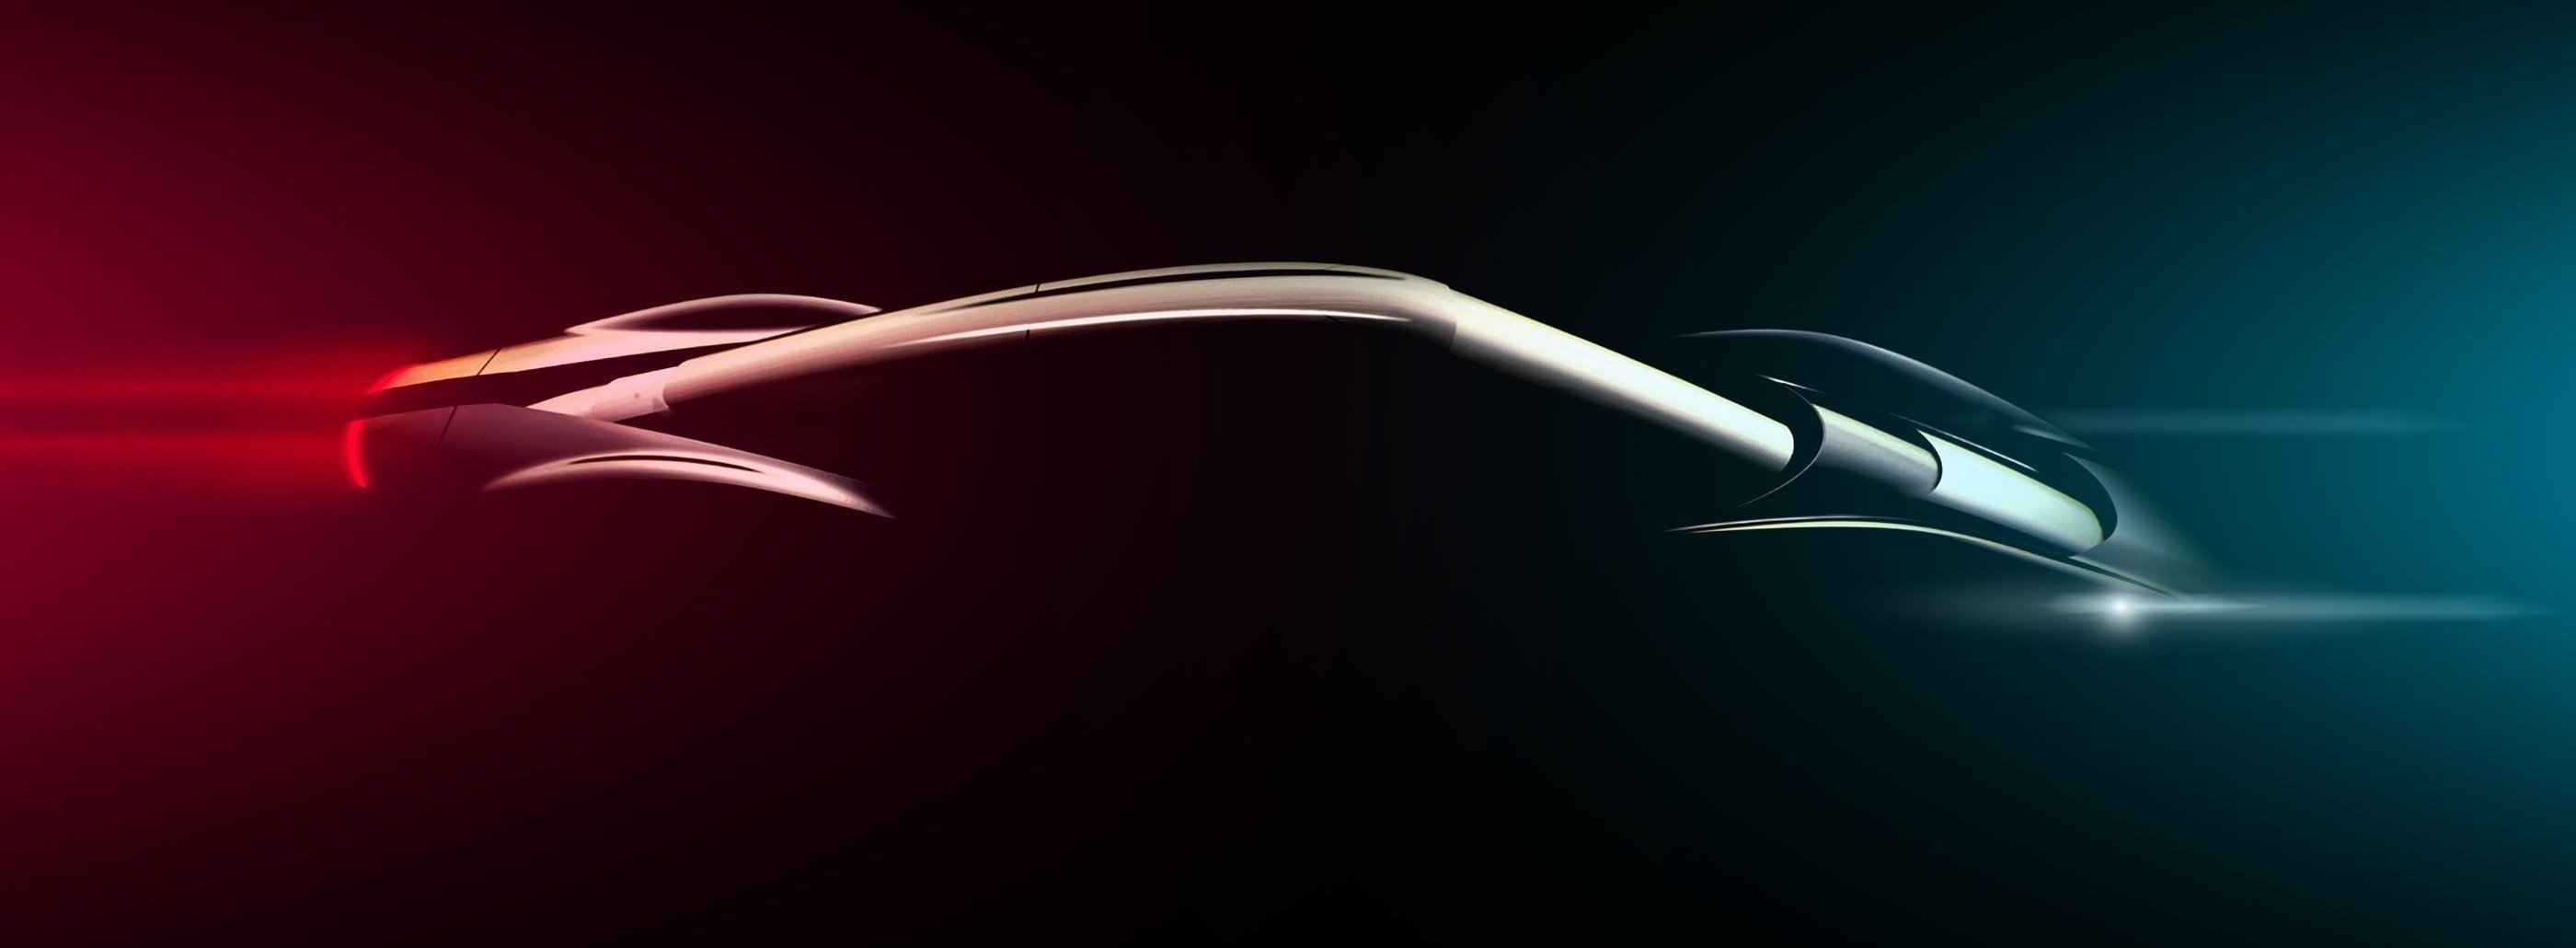 Pininfarina's first car, code-named PFO, will be unveiled to the public at the 2019 Geneva Motor Show.